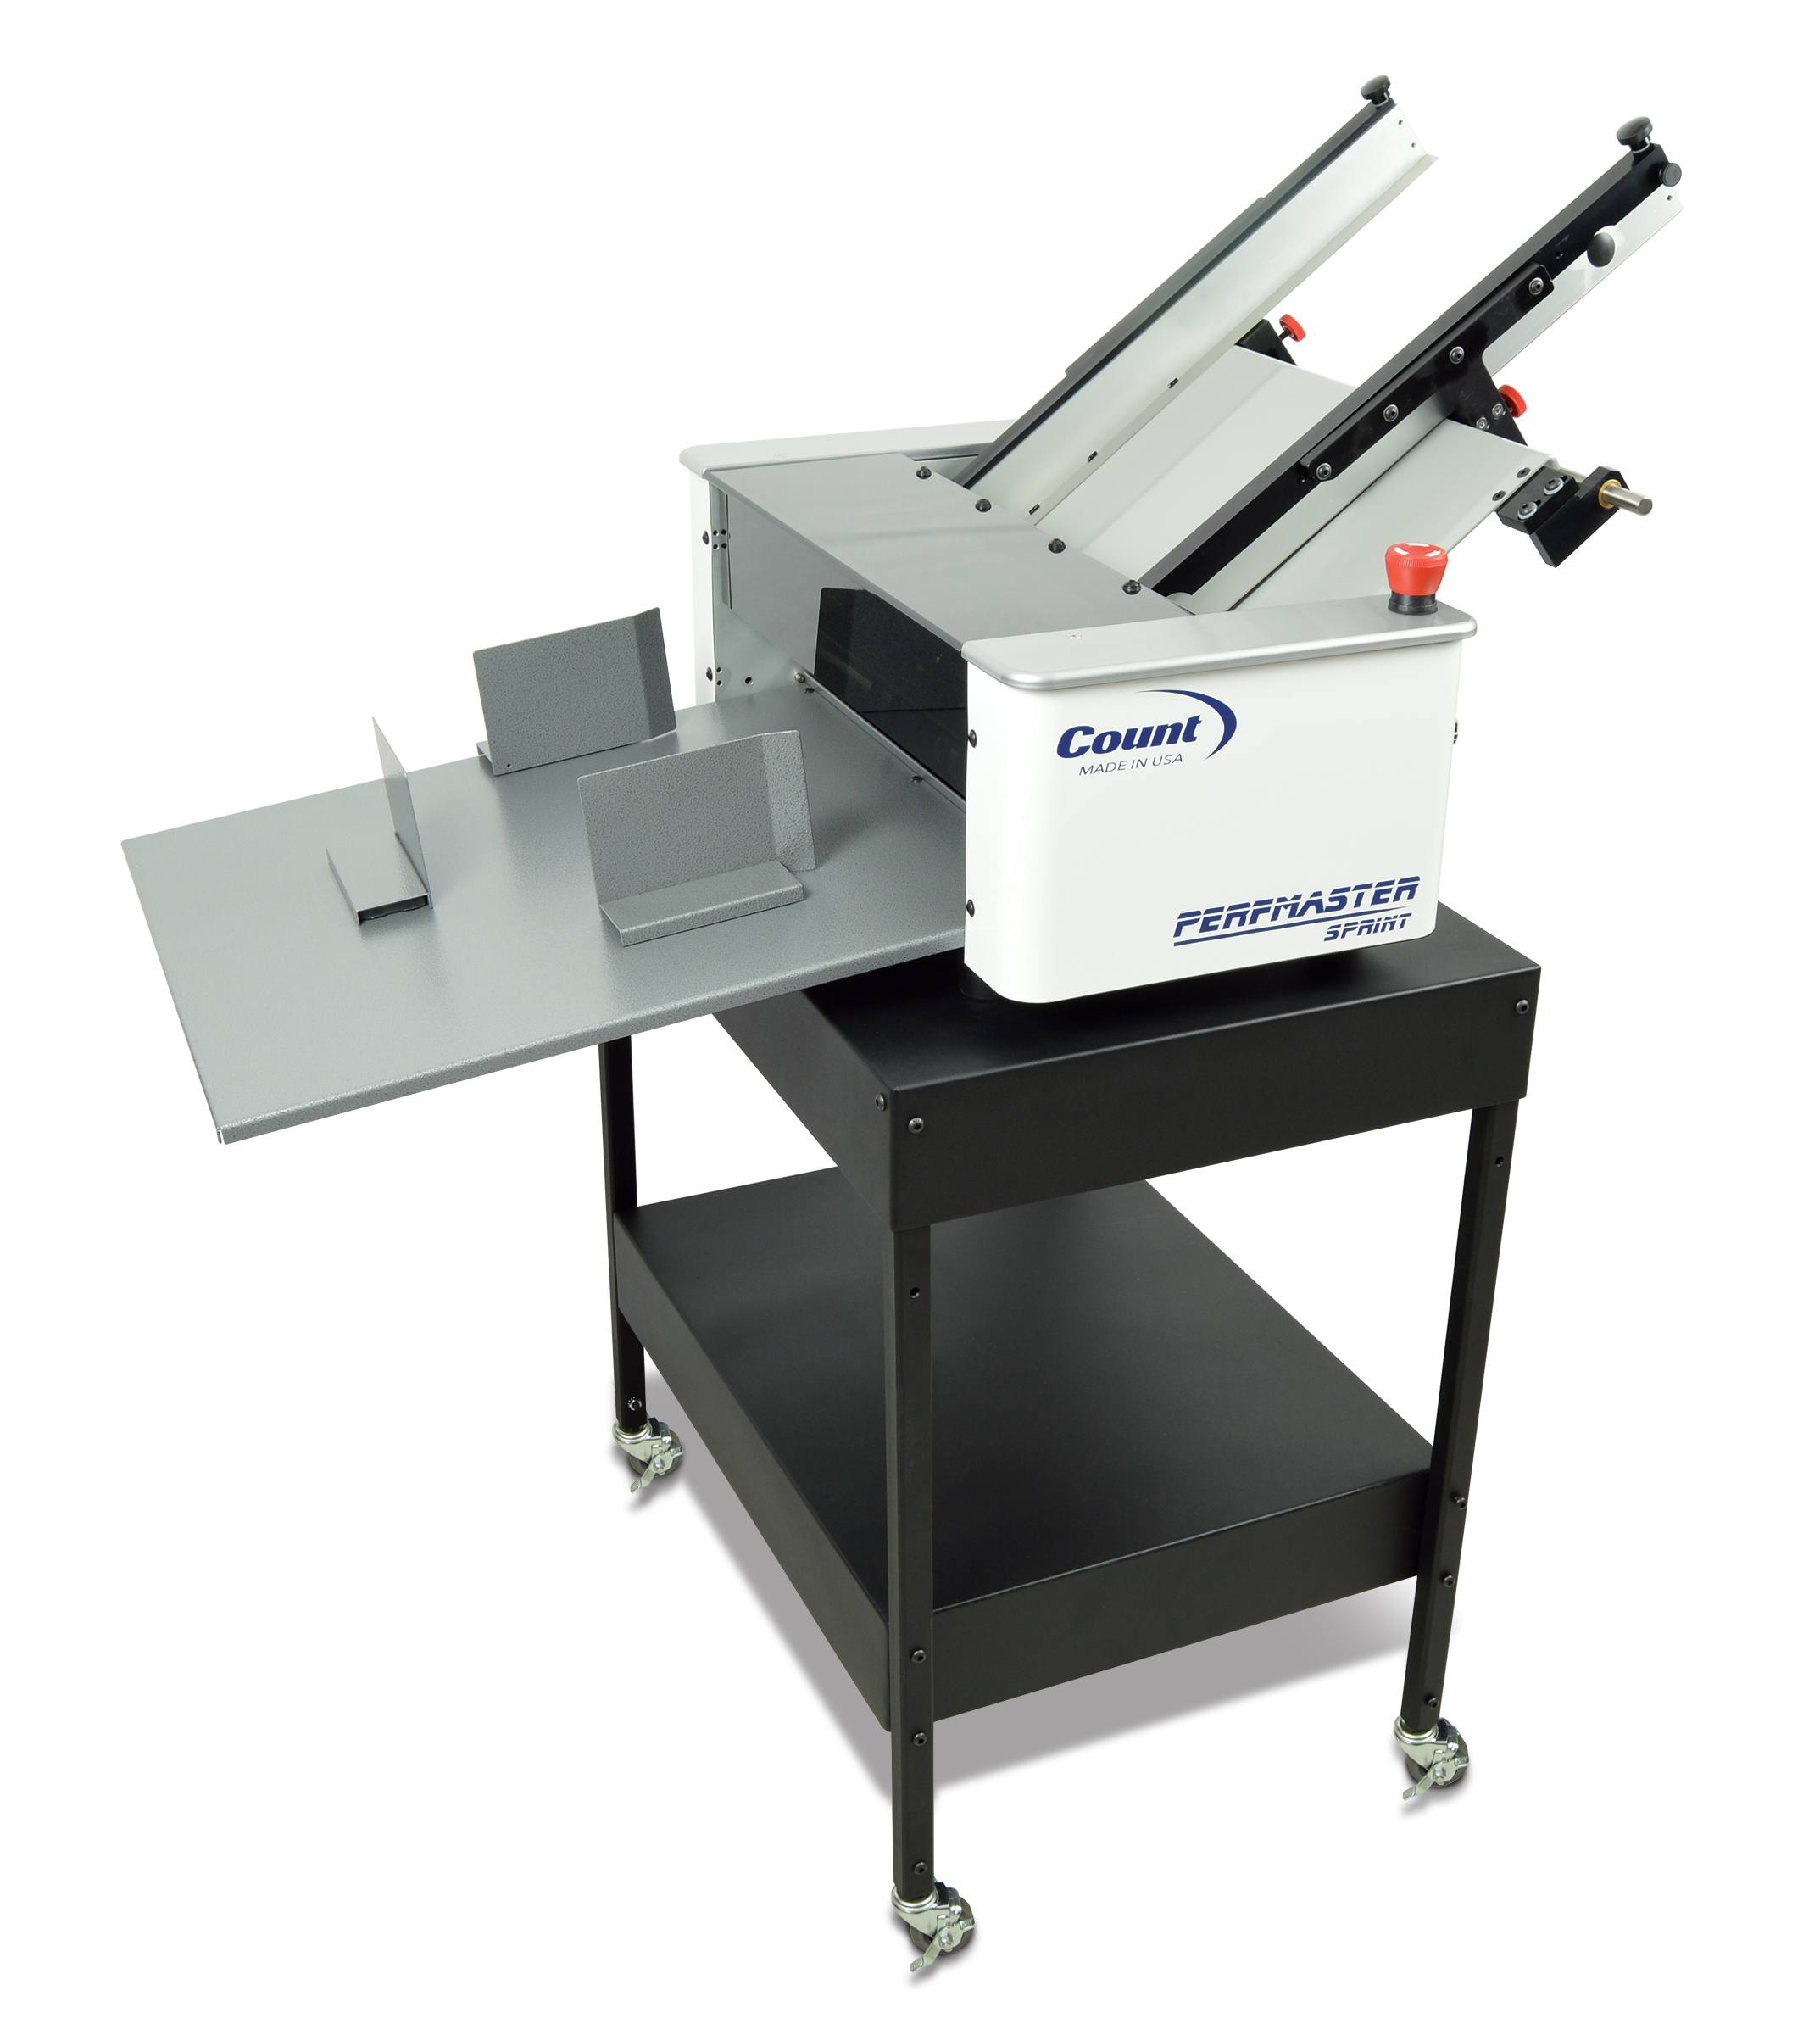 COUNT PerfMaster Sprint and CTS-100 Equipment Stand